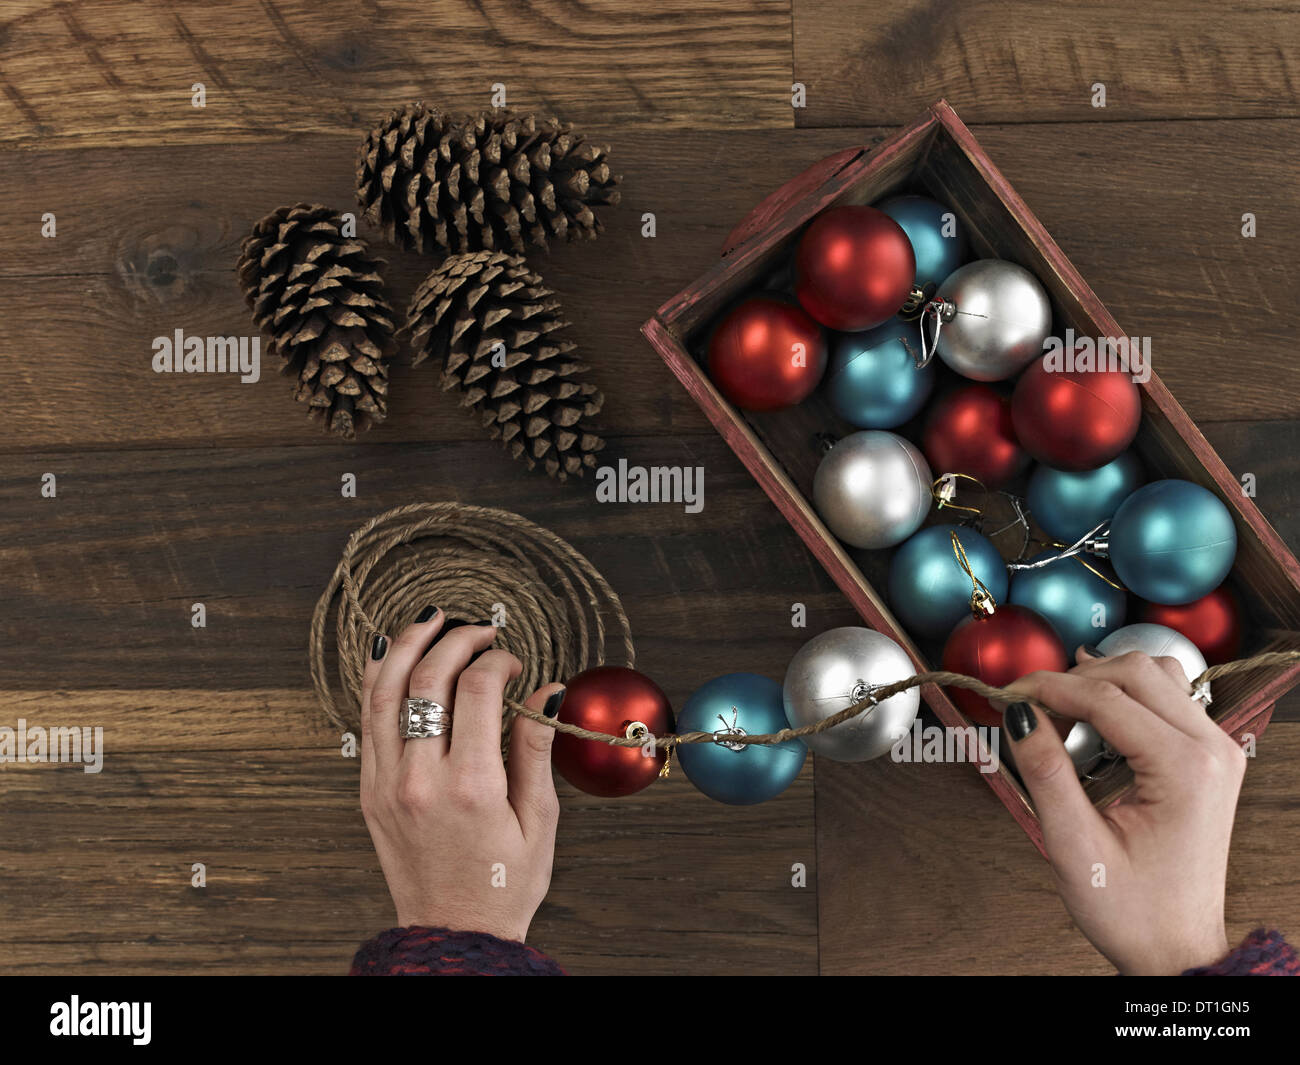 A woman threading Christmas shiny round ornaments on a piece of string A small group of pine cones - Stock Image